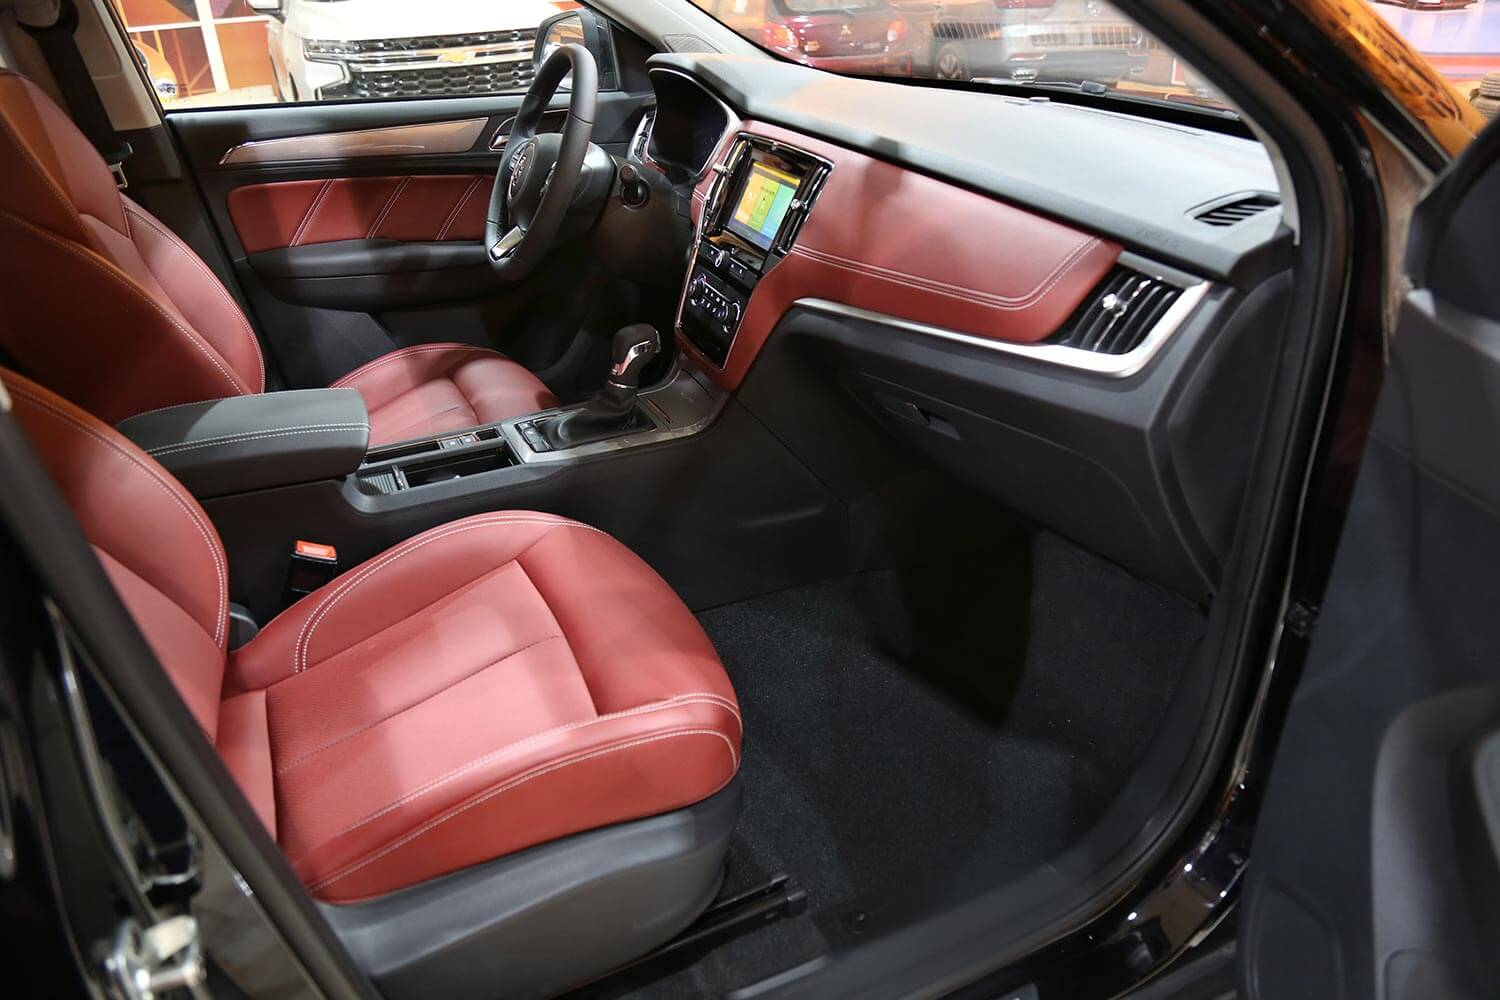 Interior Image for  MG RX5 LUX 2021